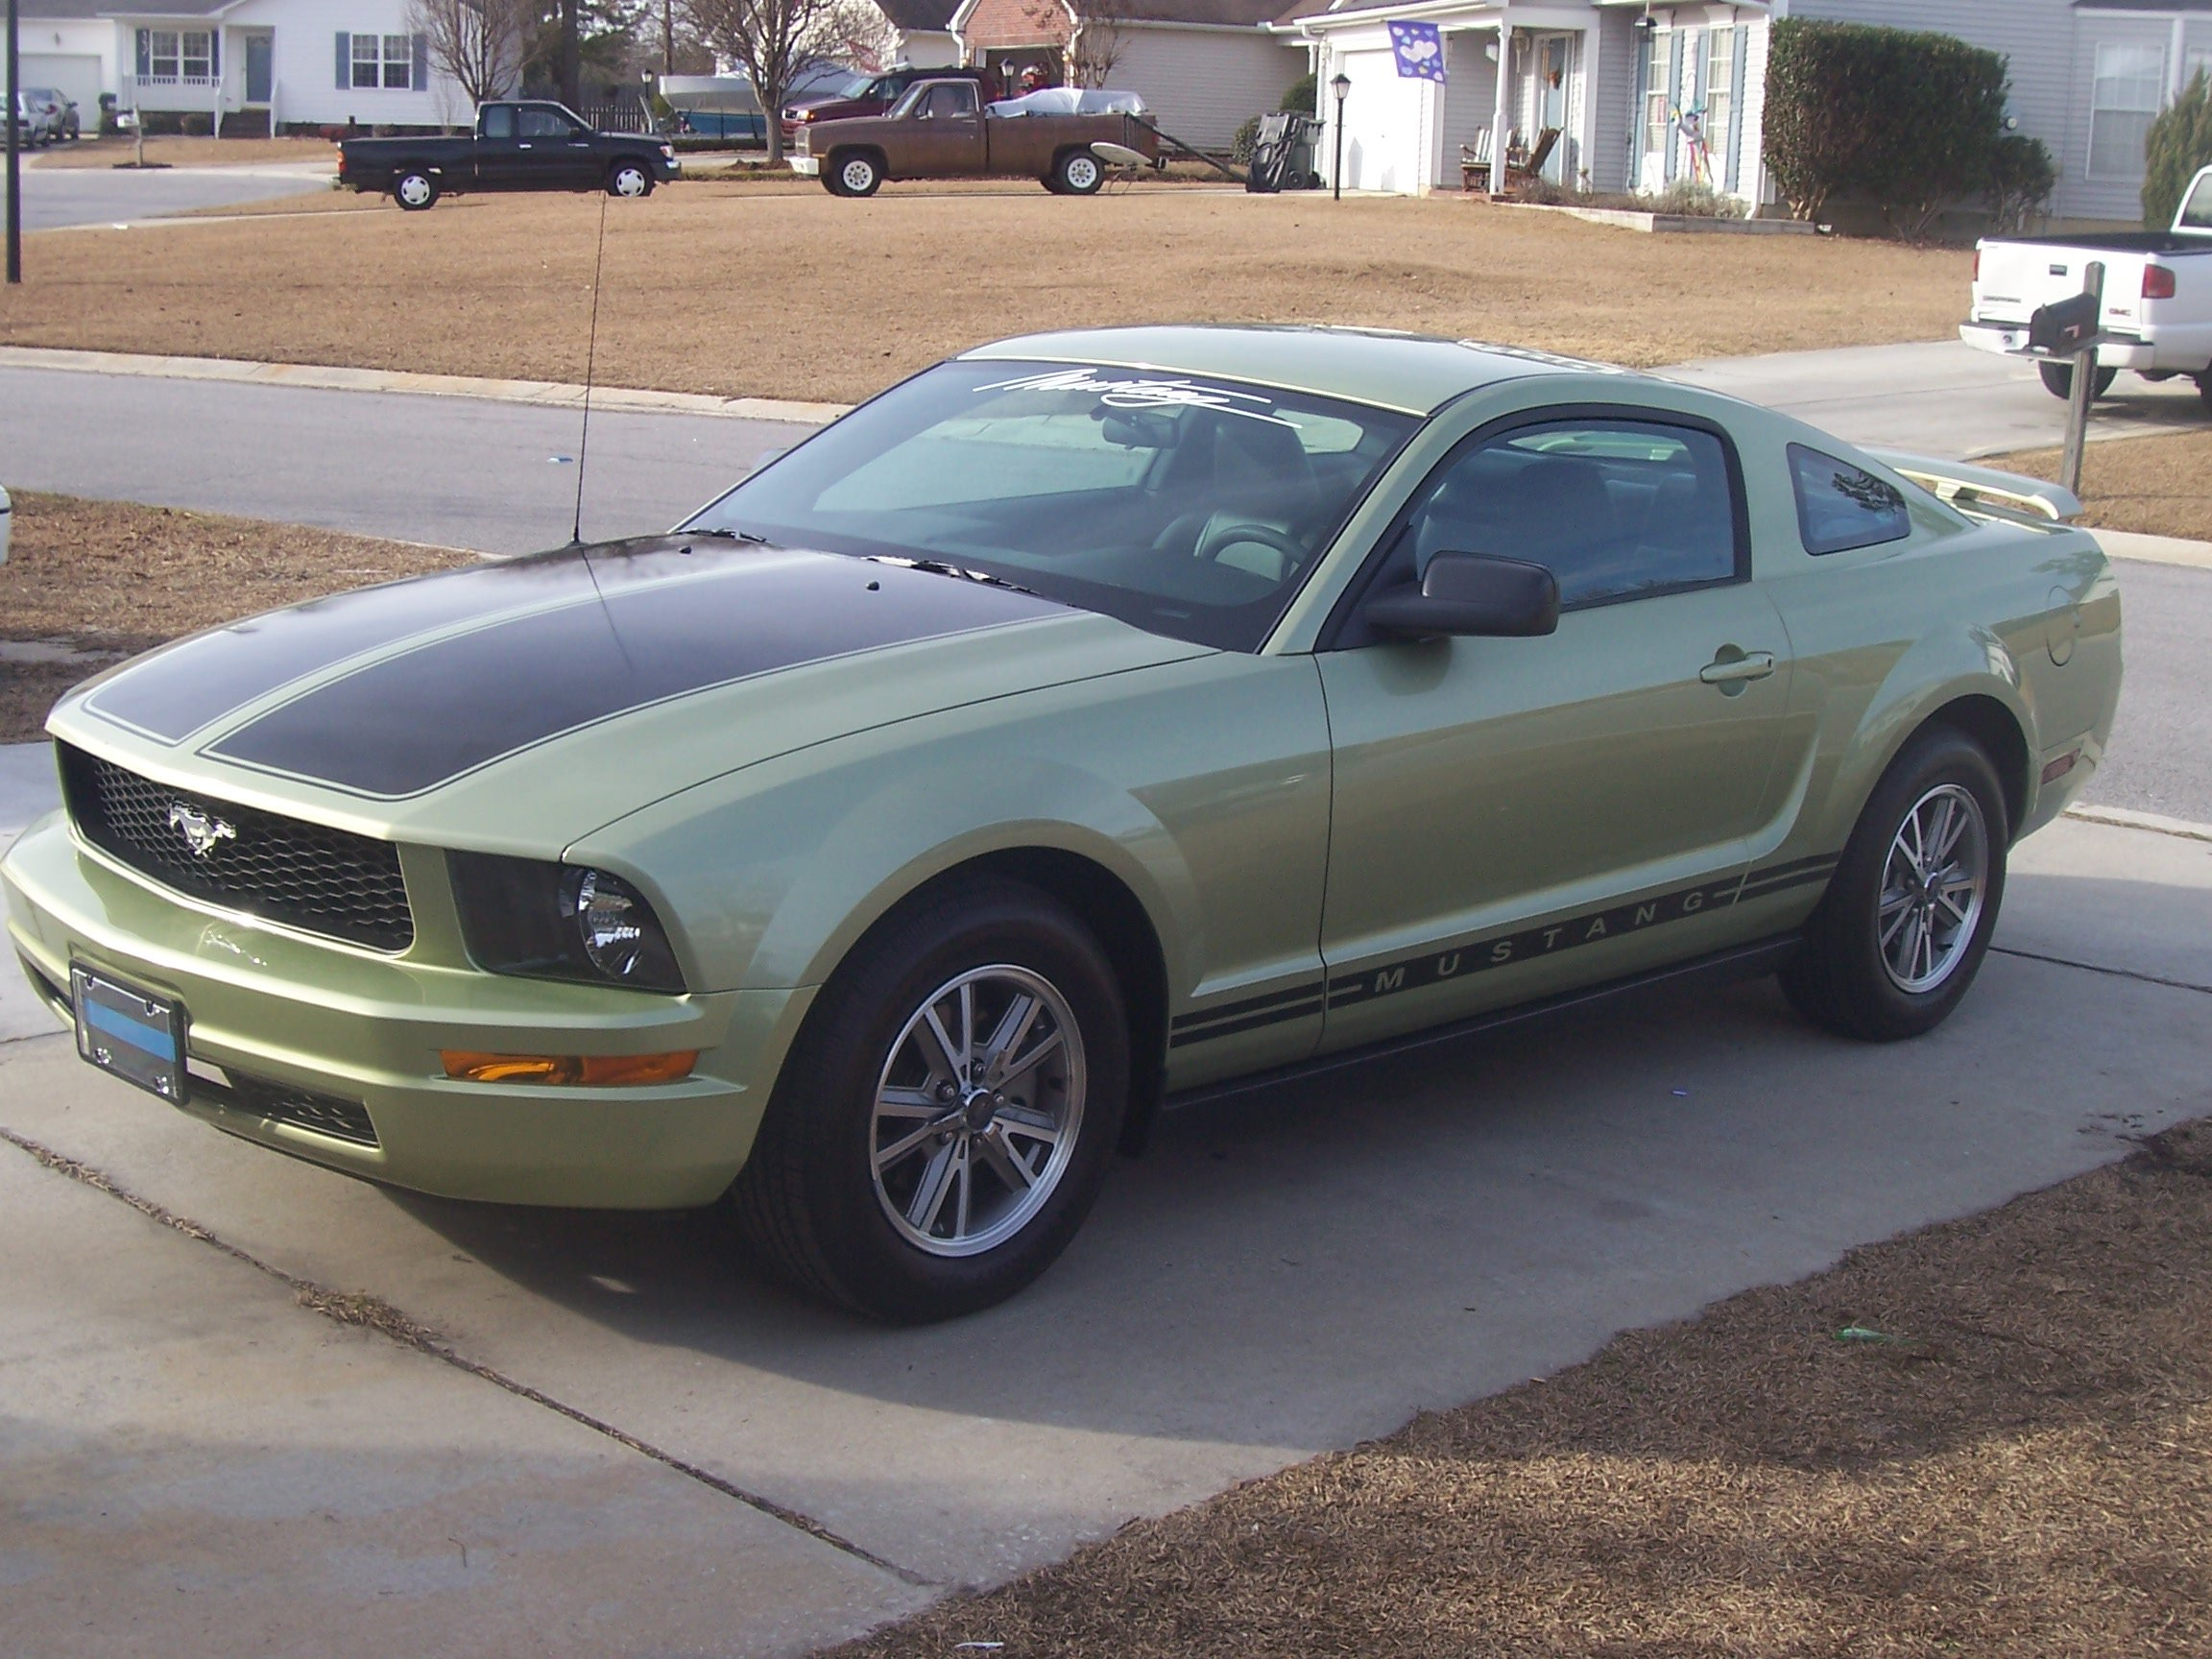 2005 mustang v6 dual exhaust any news ford mustang forum